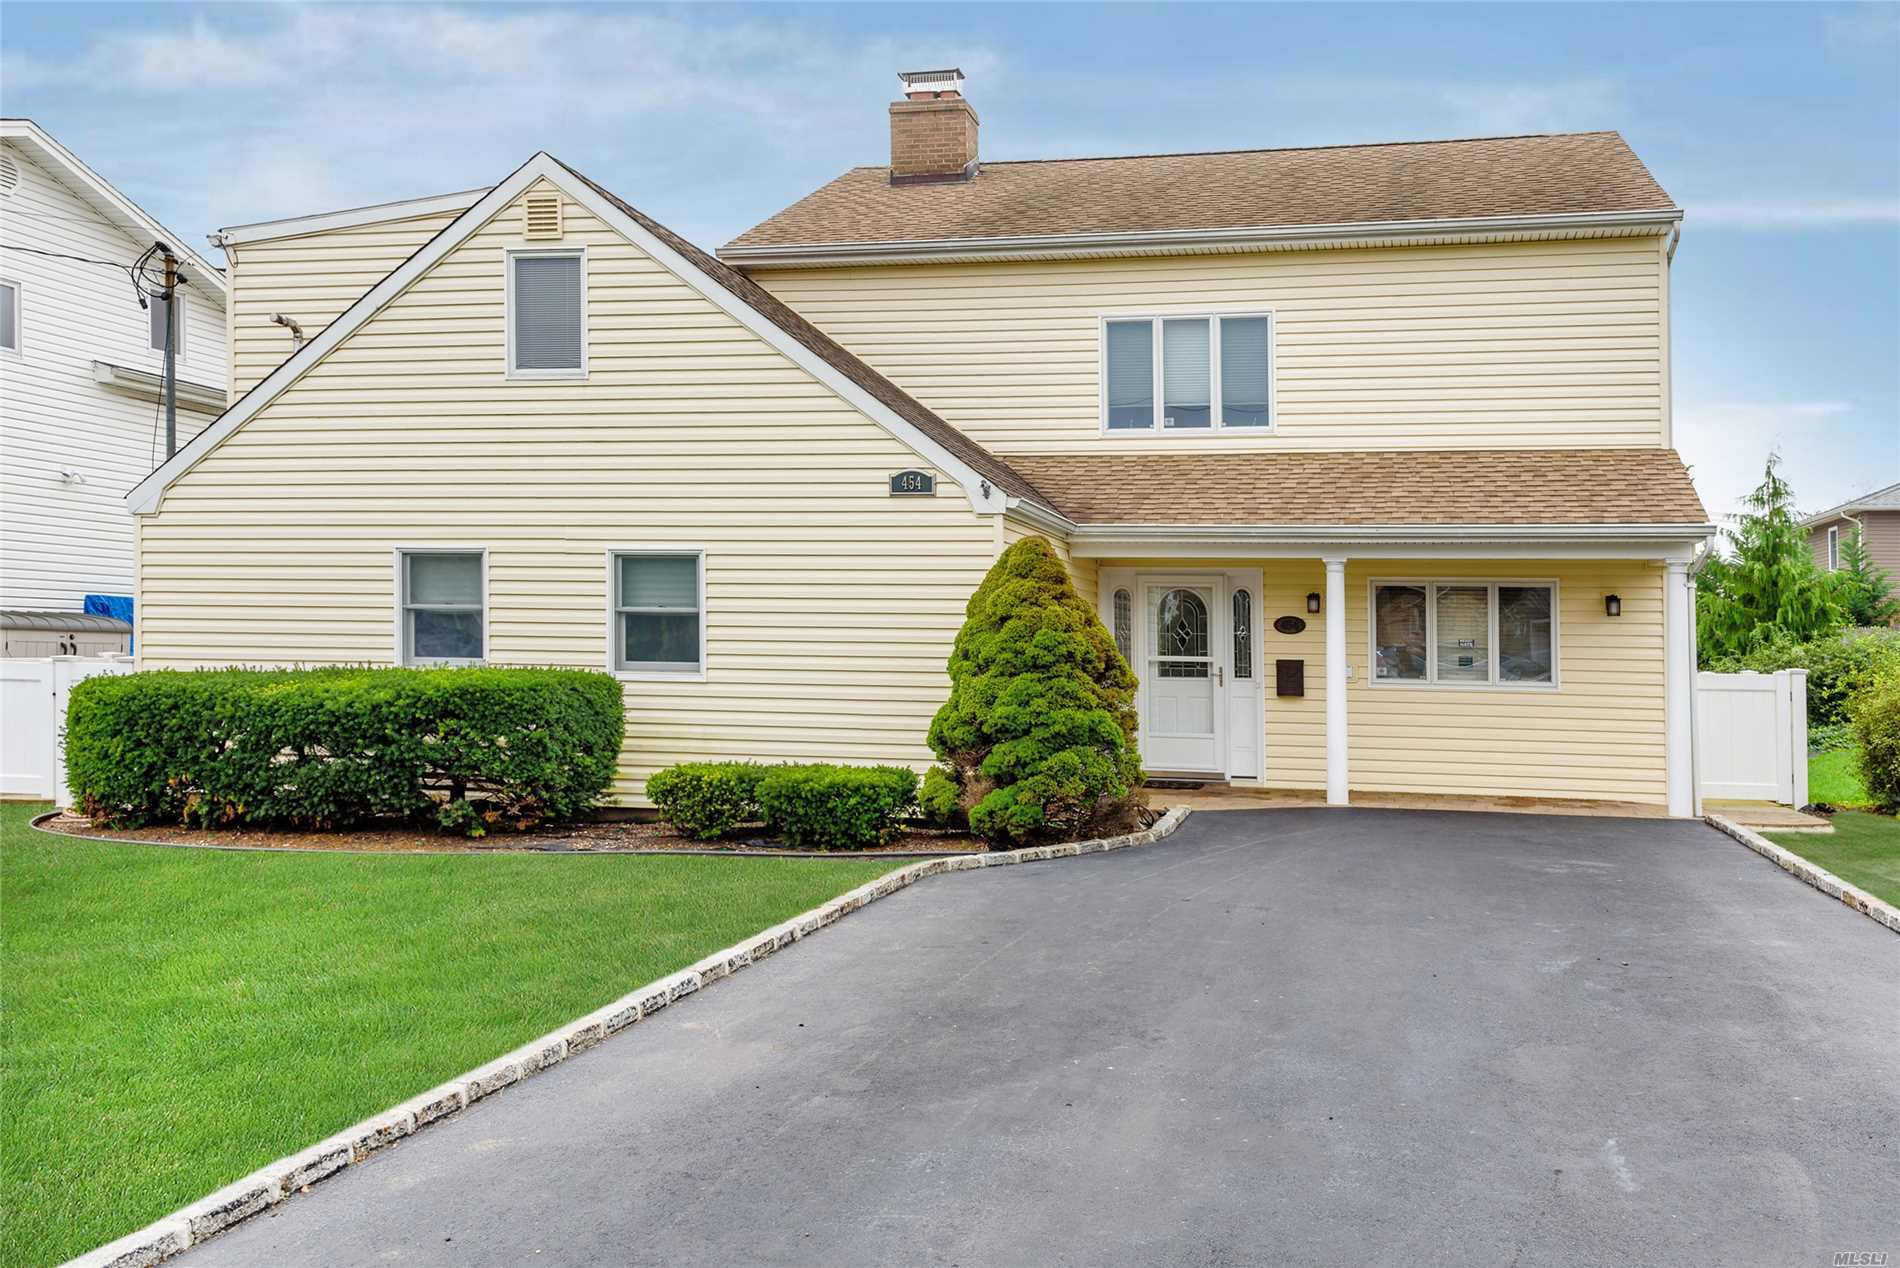 Photo of home for sale at 454 Frankel Blvd, Merrick NY